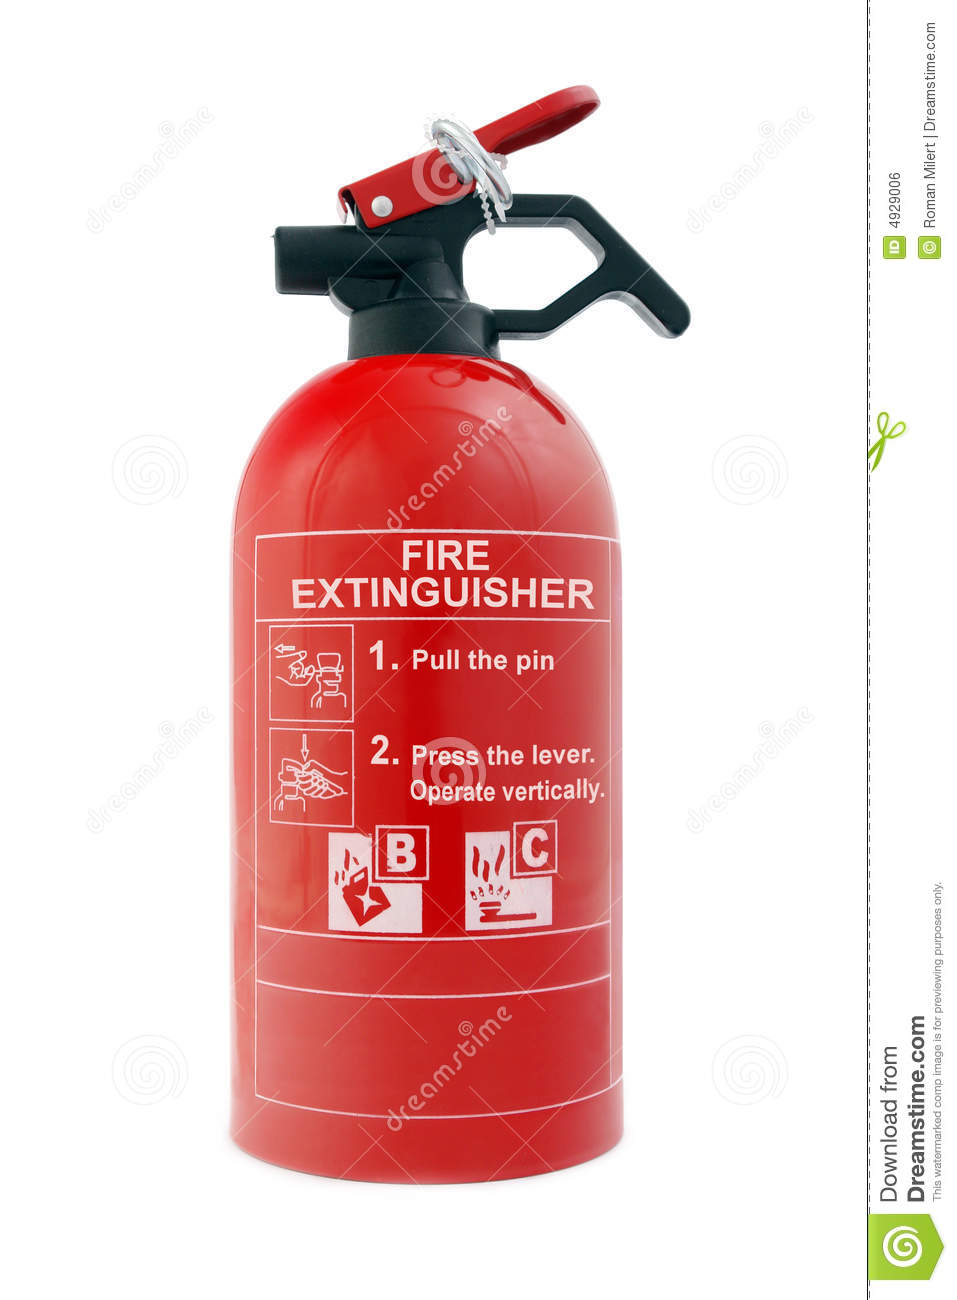 Car Fire Extinguisher >> Car fire extinguisher stock photo. Image of arson, flame